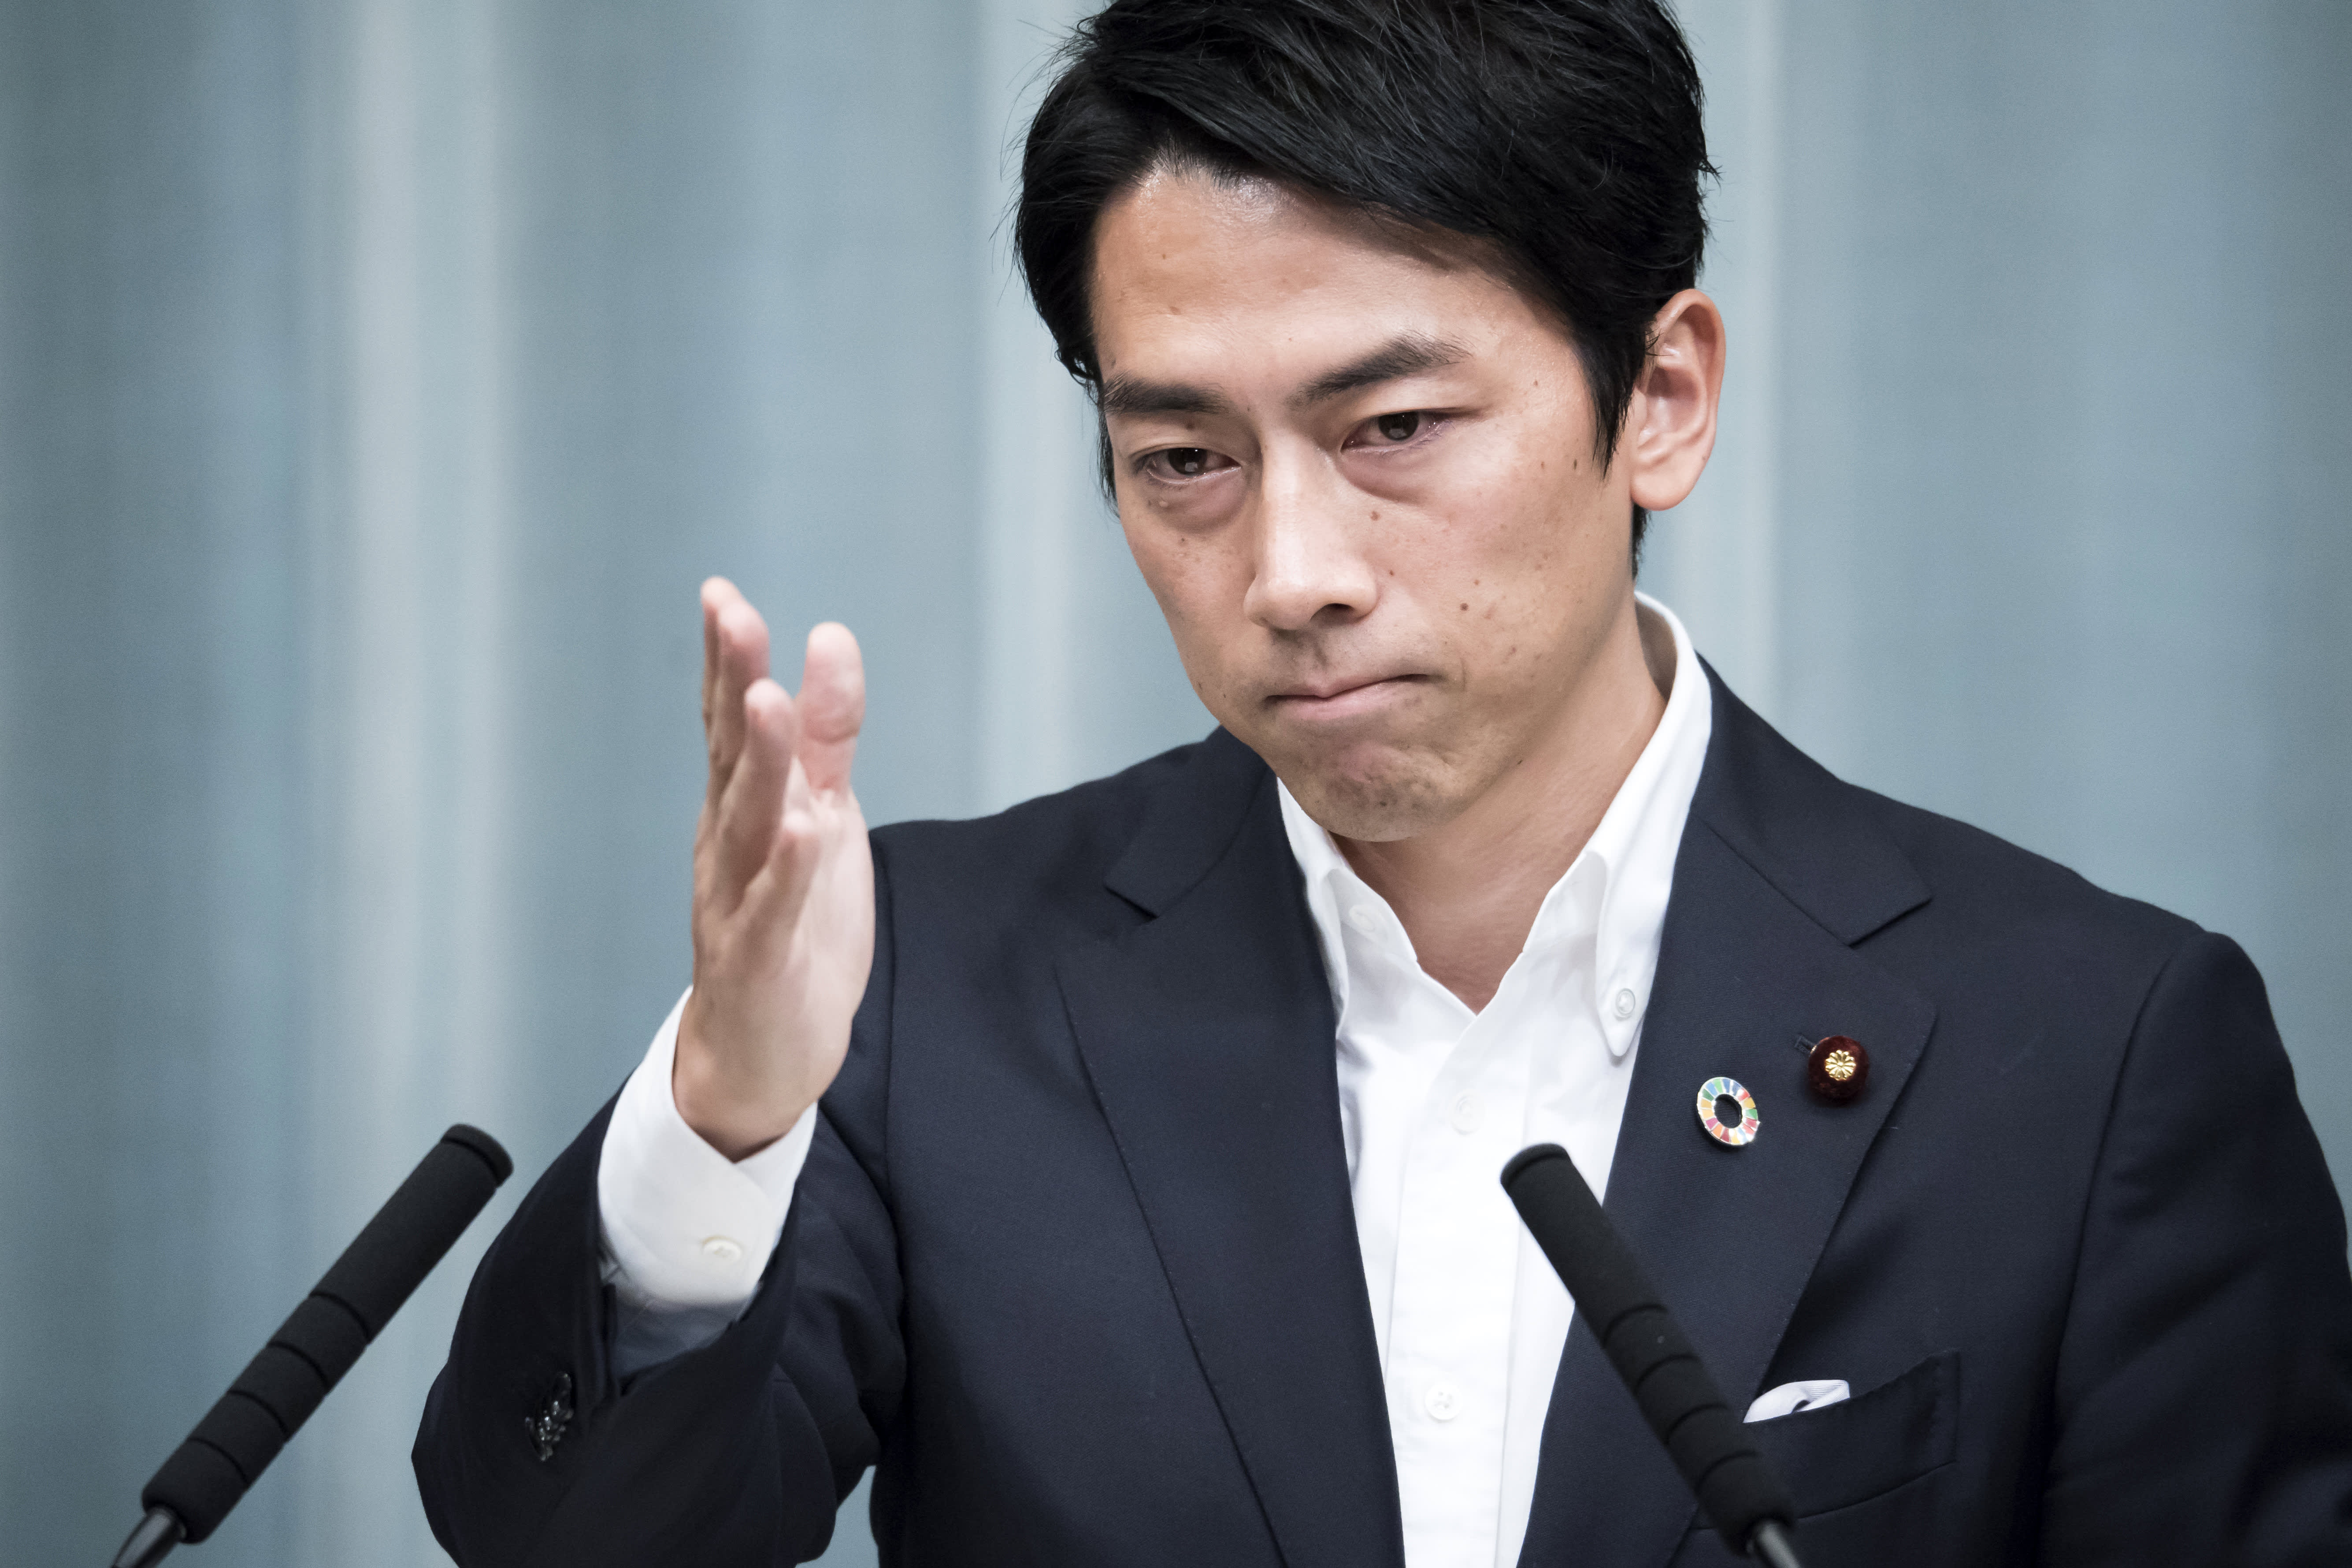 This Japanese politician's 2 weeks of paternity leave is dividing the public